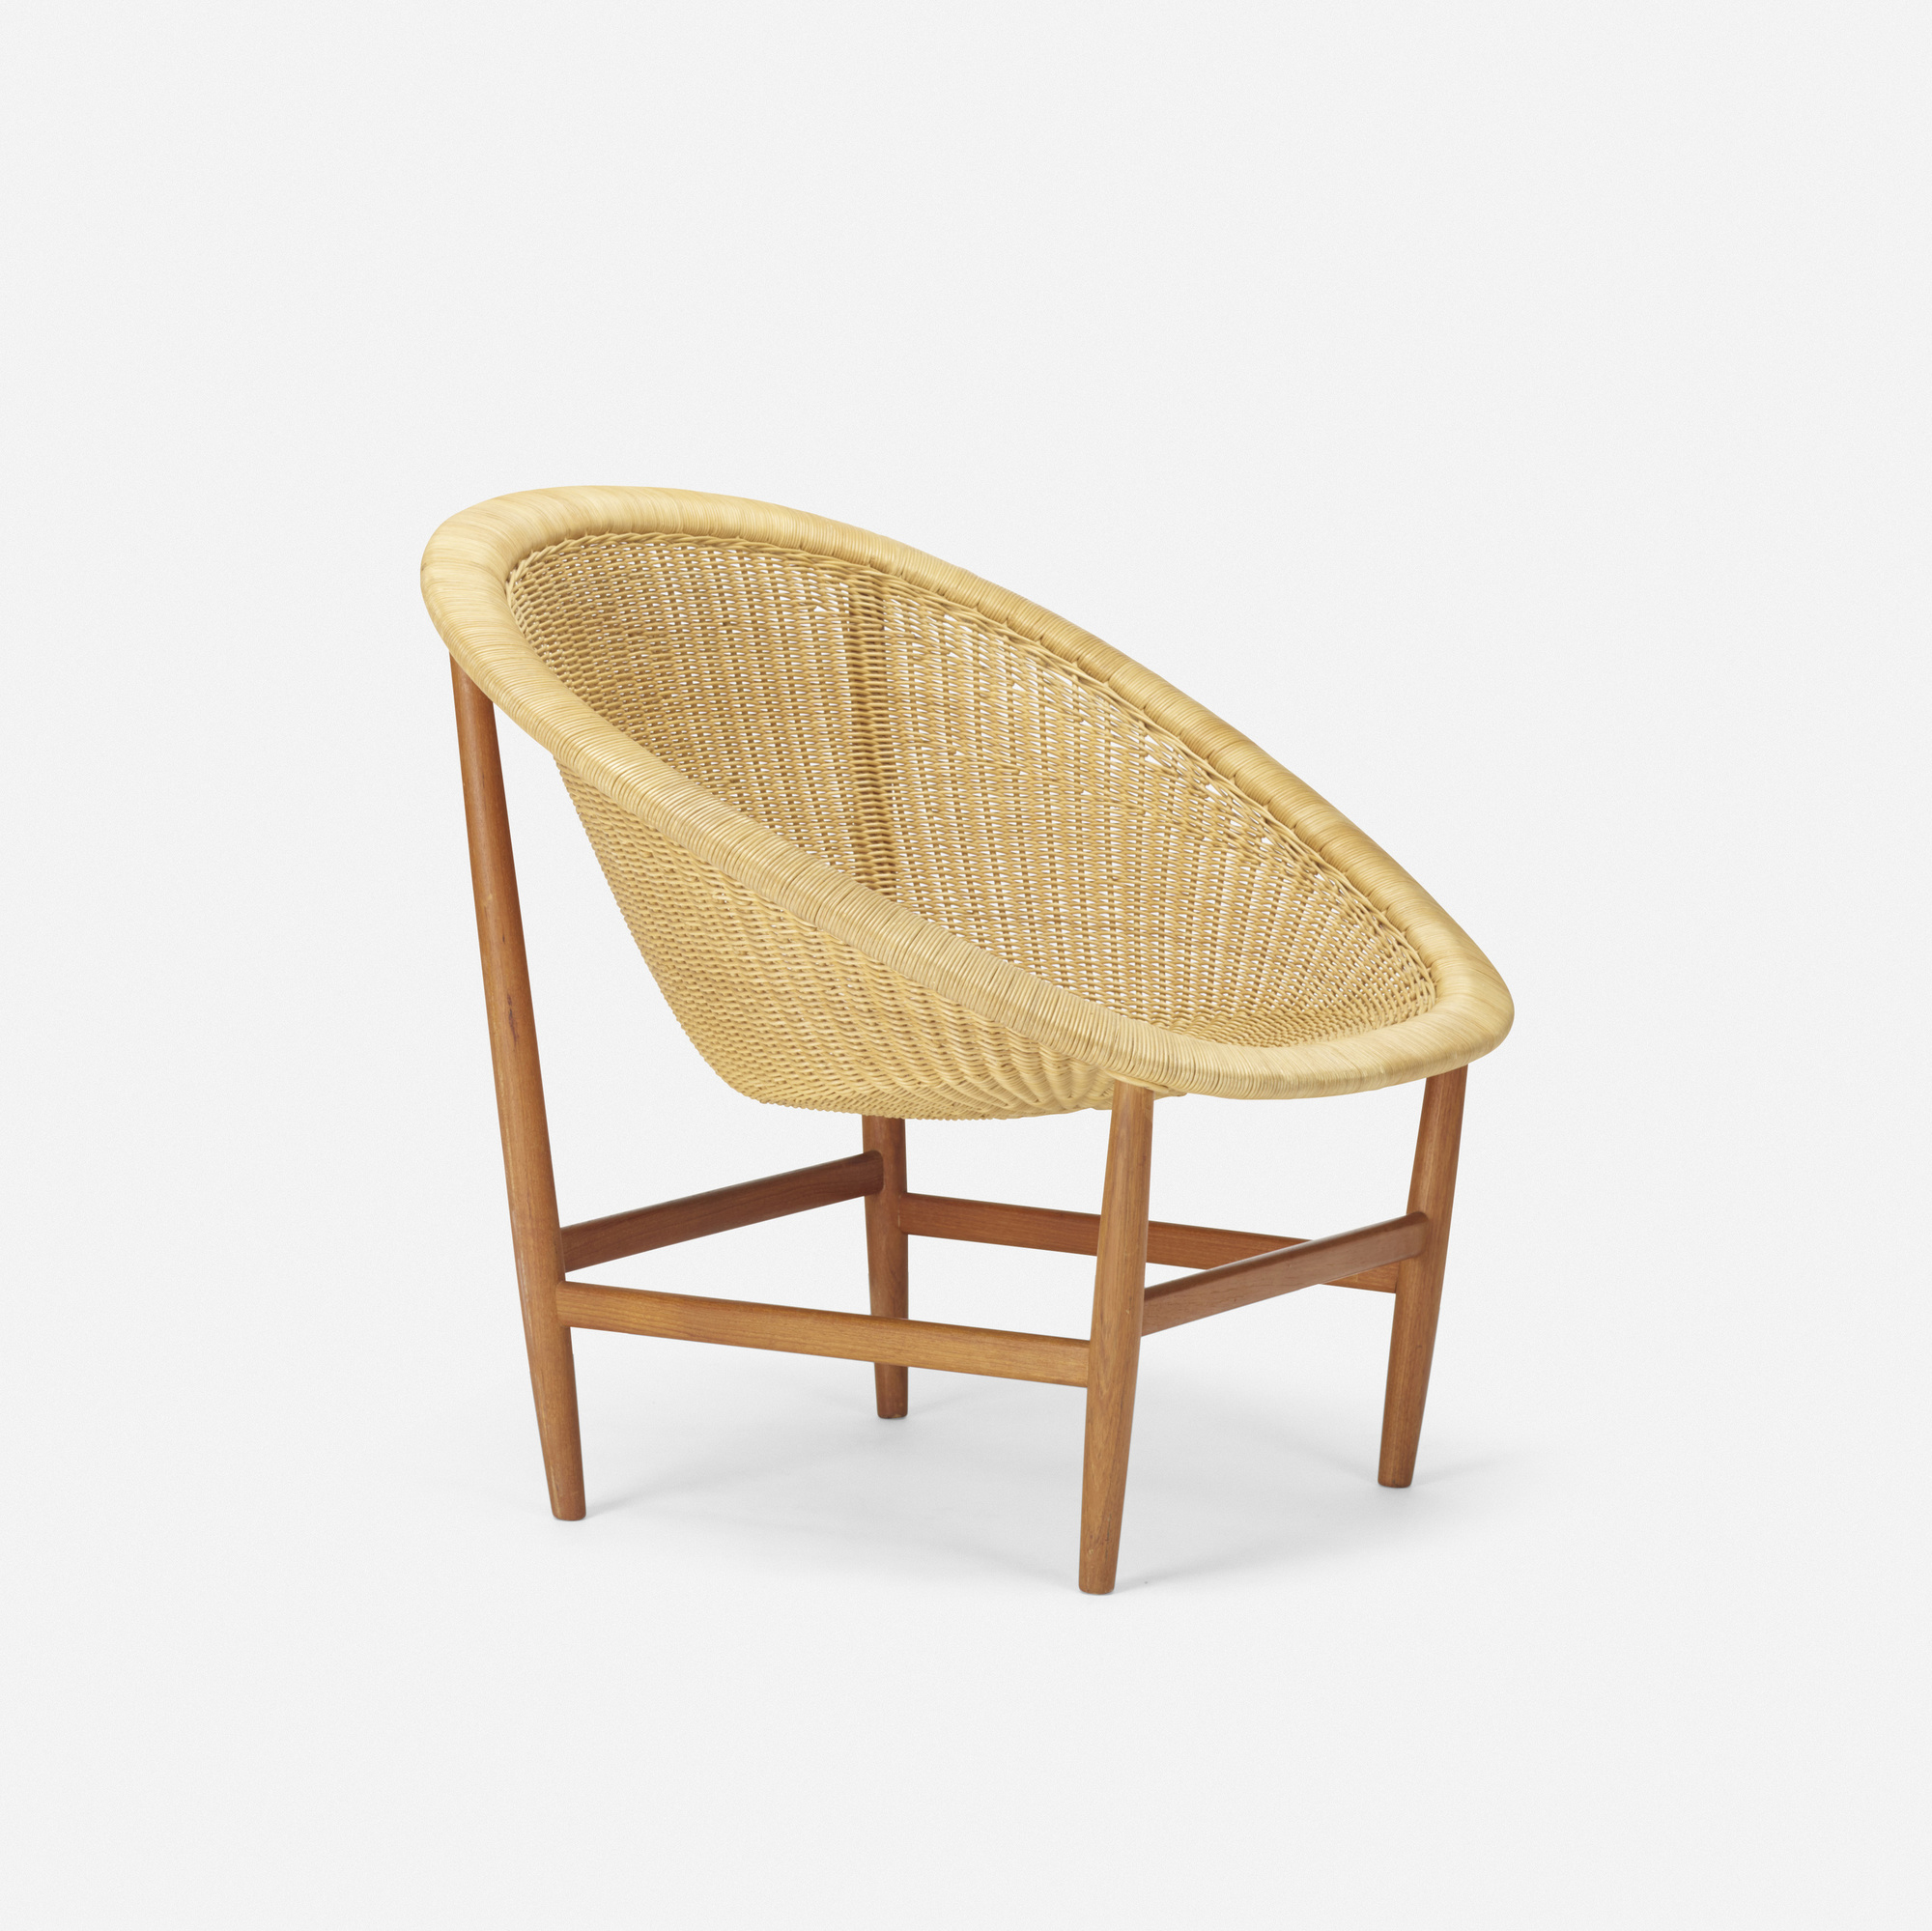 Oval lounge chair - 128 Nanna Ditzel Lounge Chair 1 Of 2